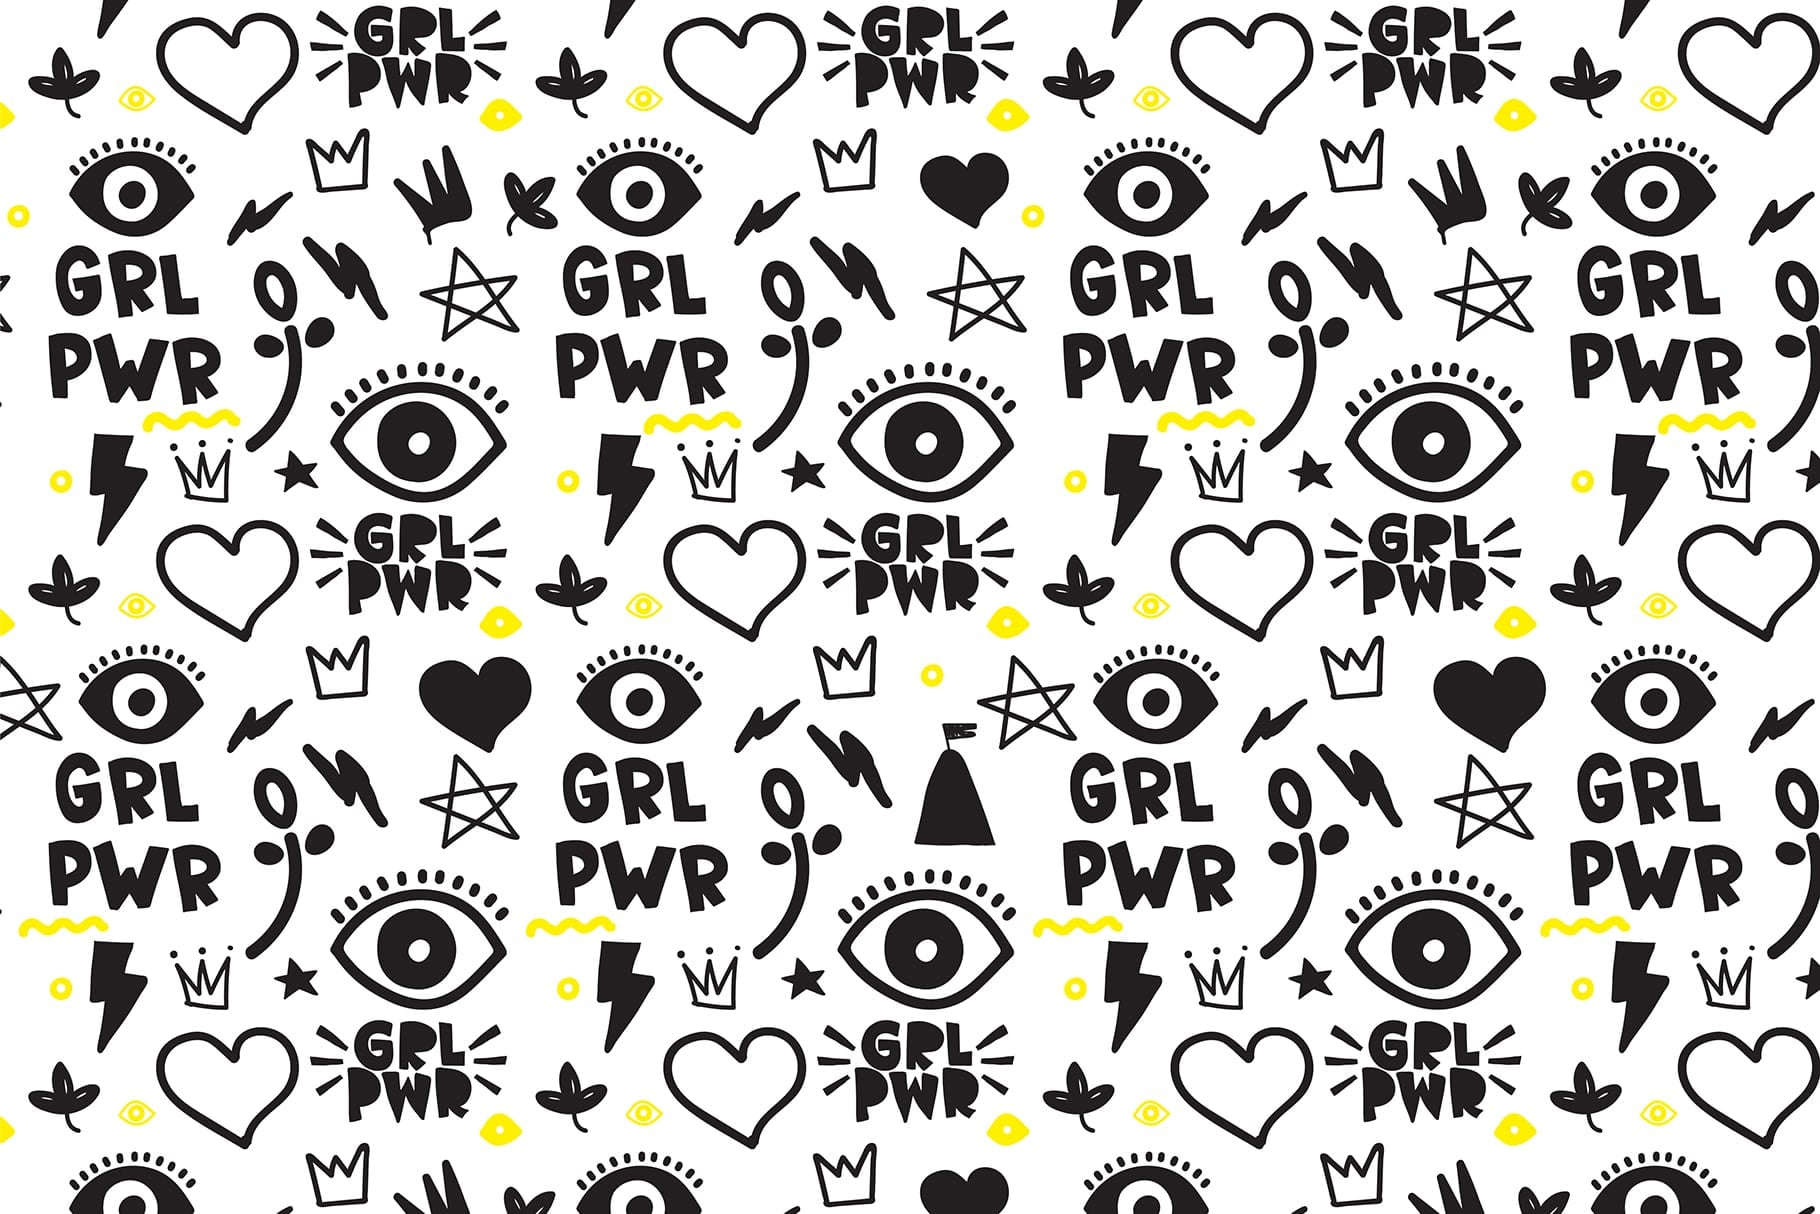 170 Doodles + Elements + Patterns - $25 Only - Preview 14 min